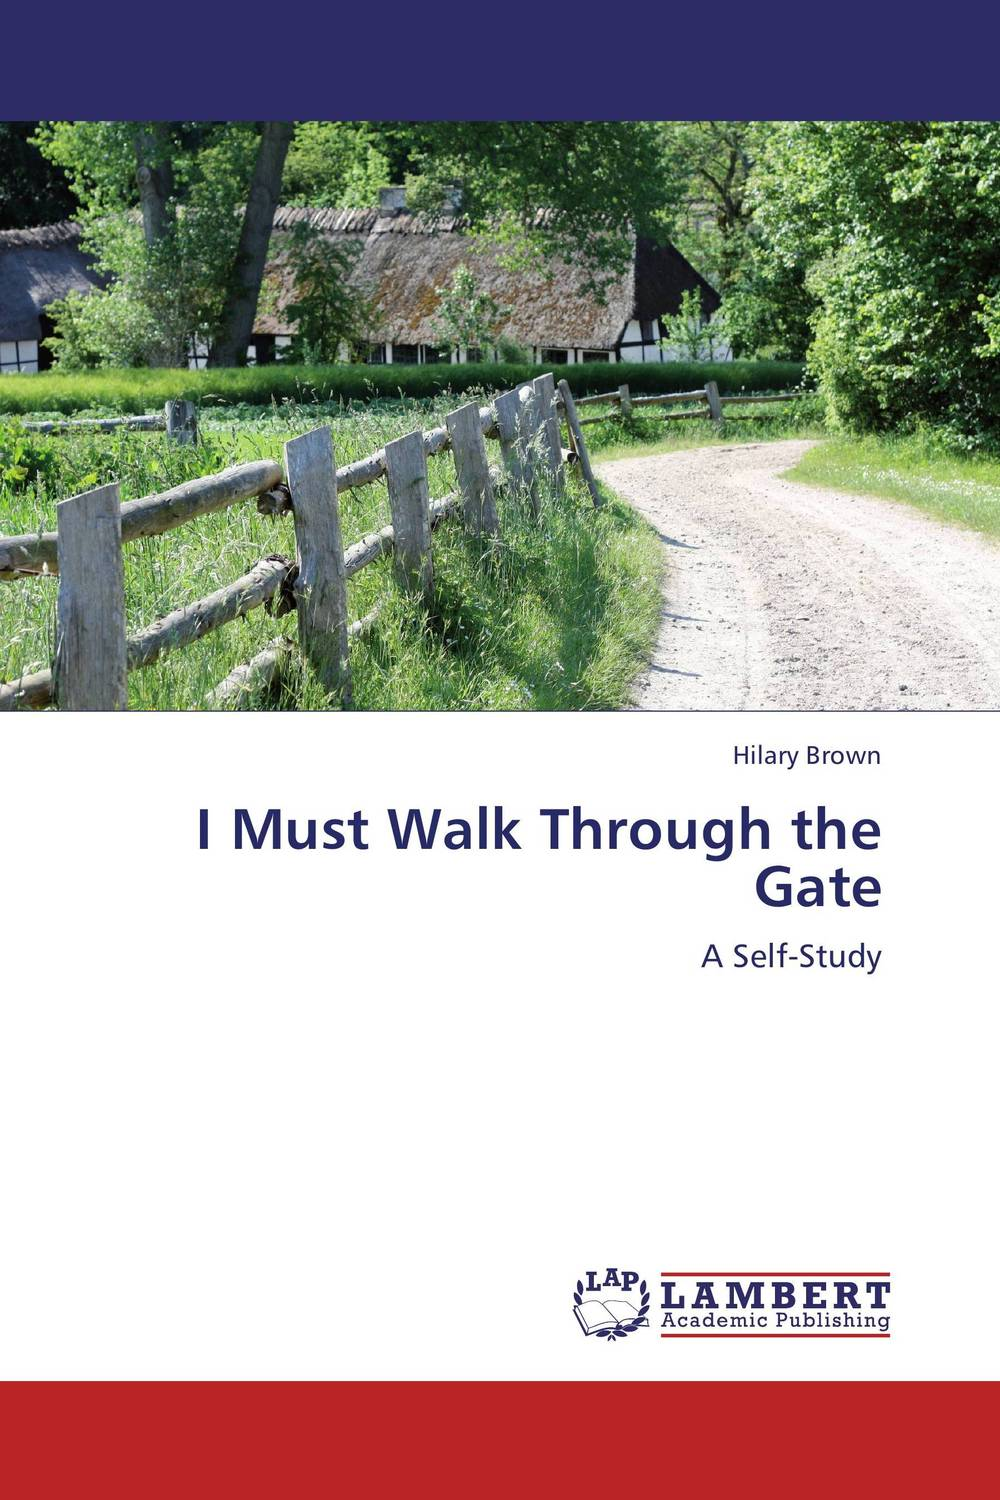 I Must Walk Through the Gate